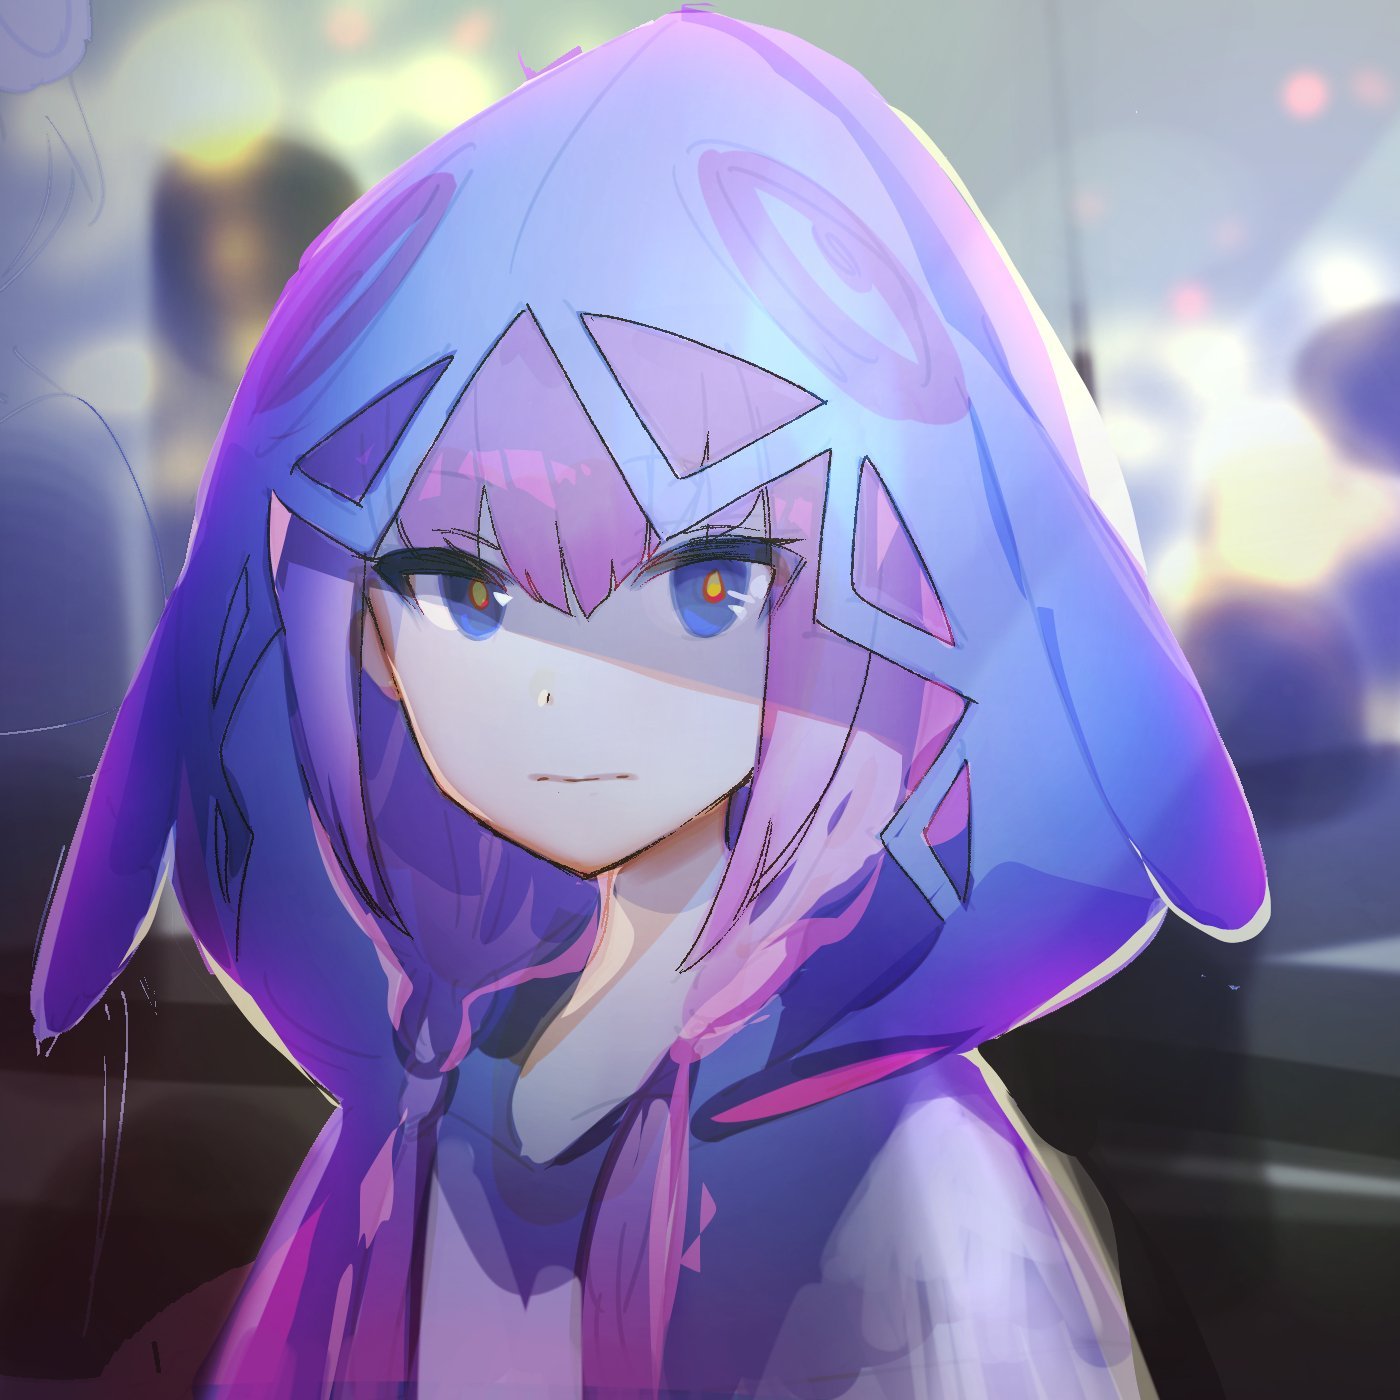 1girl blue_eyes blush city commentary highres hood hood_up hooded_jacket hoodie jacket kaf kasukabe_tsukushi_(artist) lights long_hair looking_at_viewer low_twintails multicolored multicolored_eyes outdoors pink_hair red_eyes shade sketch solo twintails upper_body virtual_kaf virtual_youtuber yellow_eyes